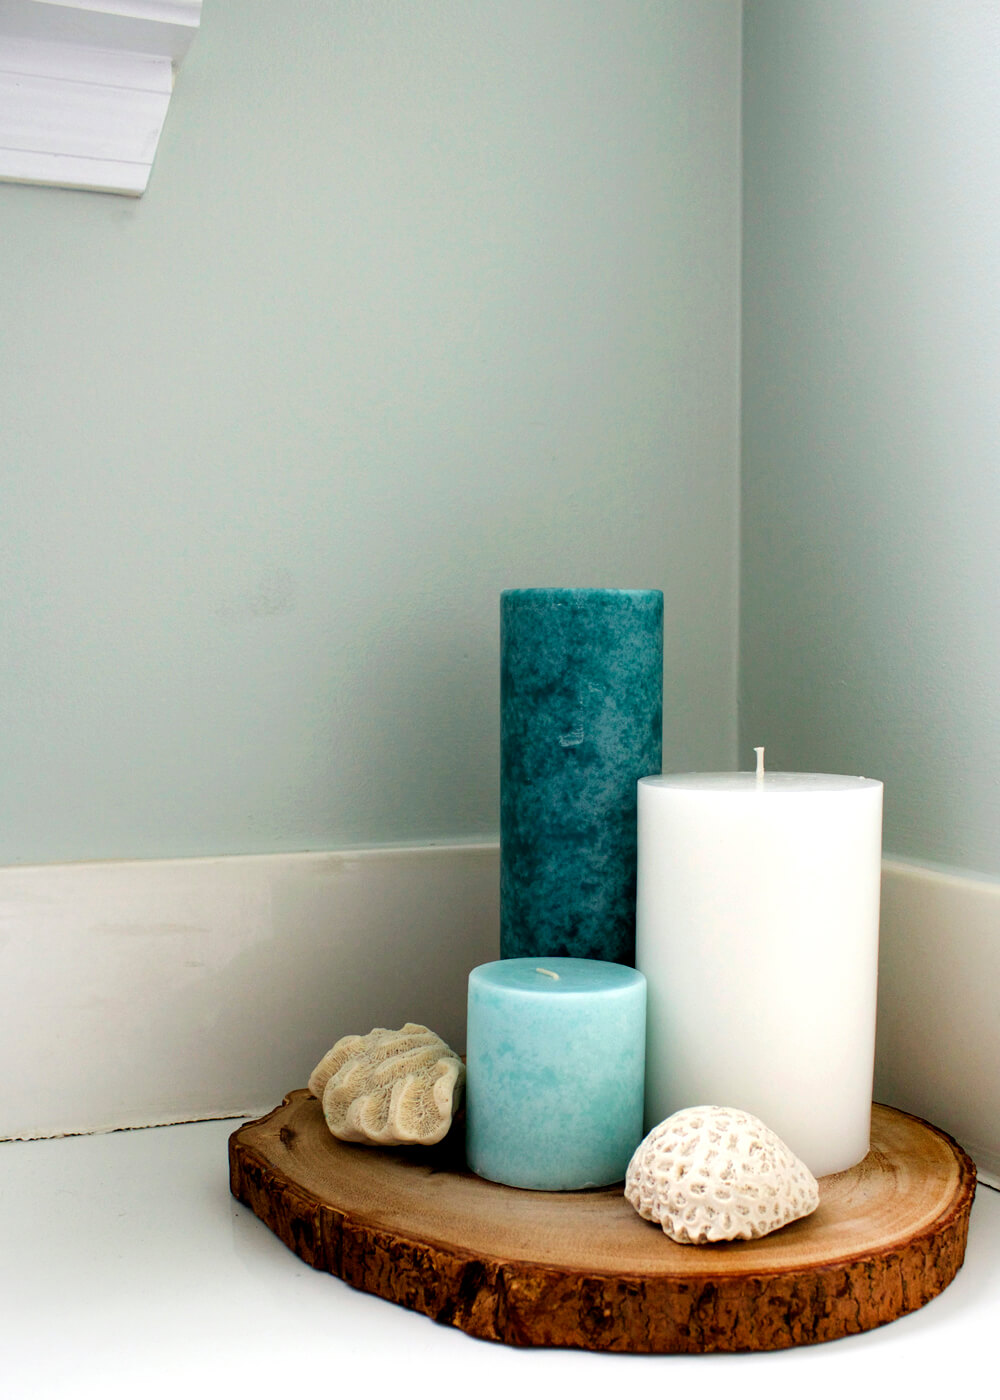 25 Best Bathroom Decor Ideas and Designs that are Trendy ...